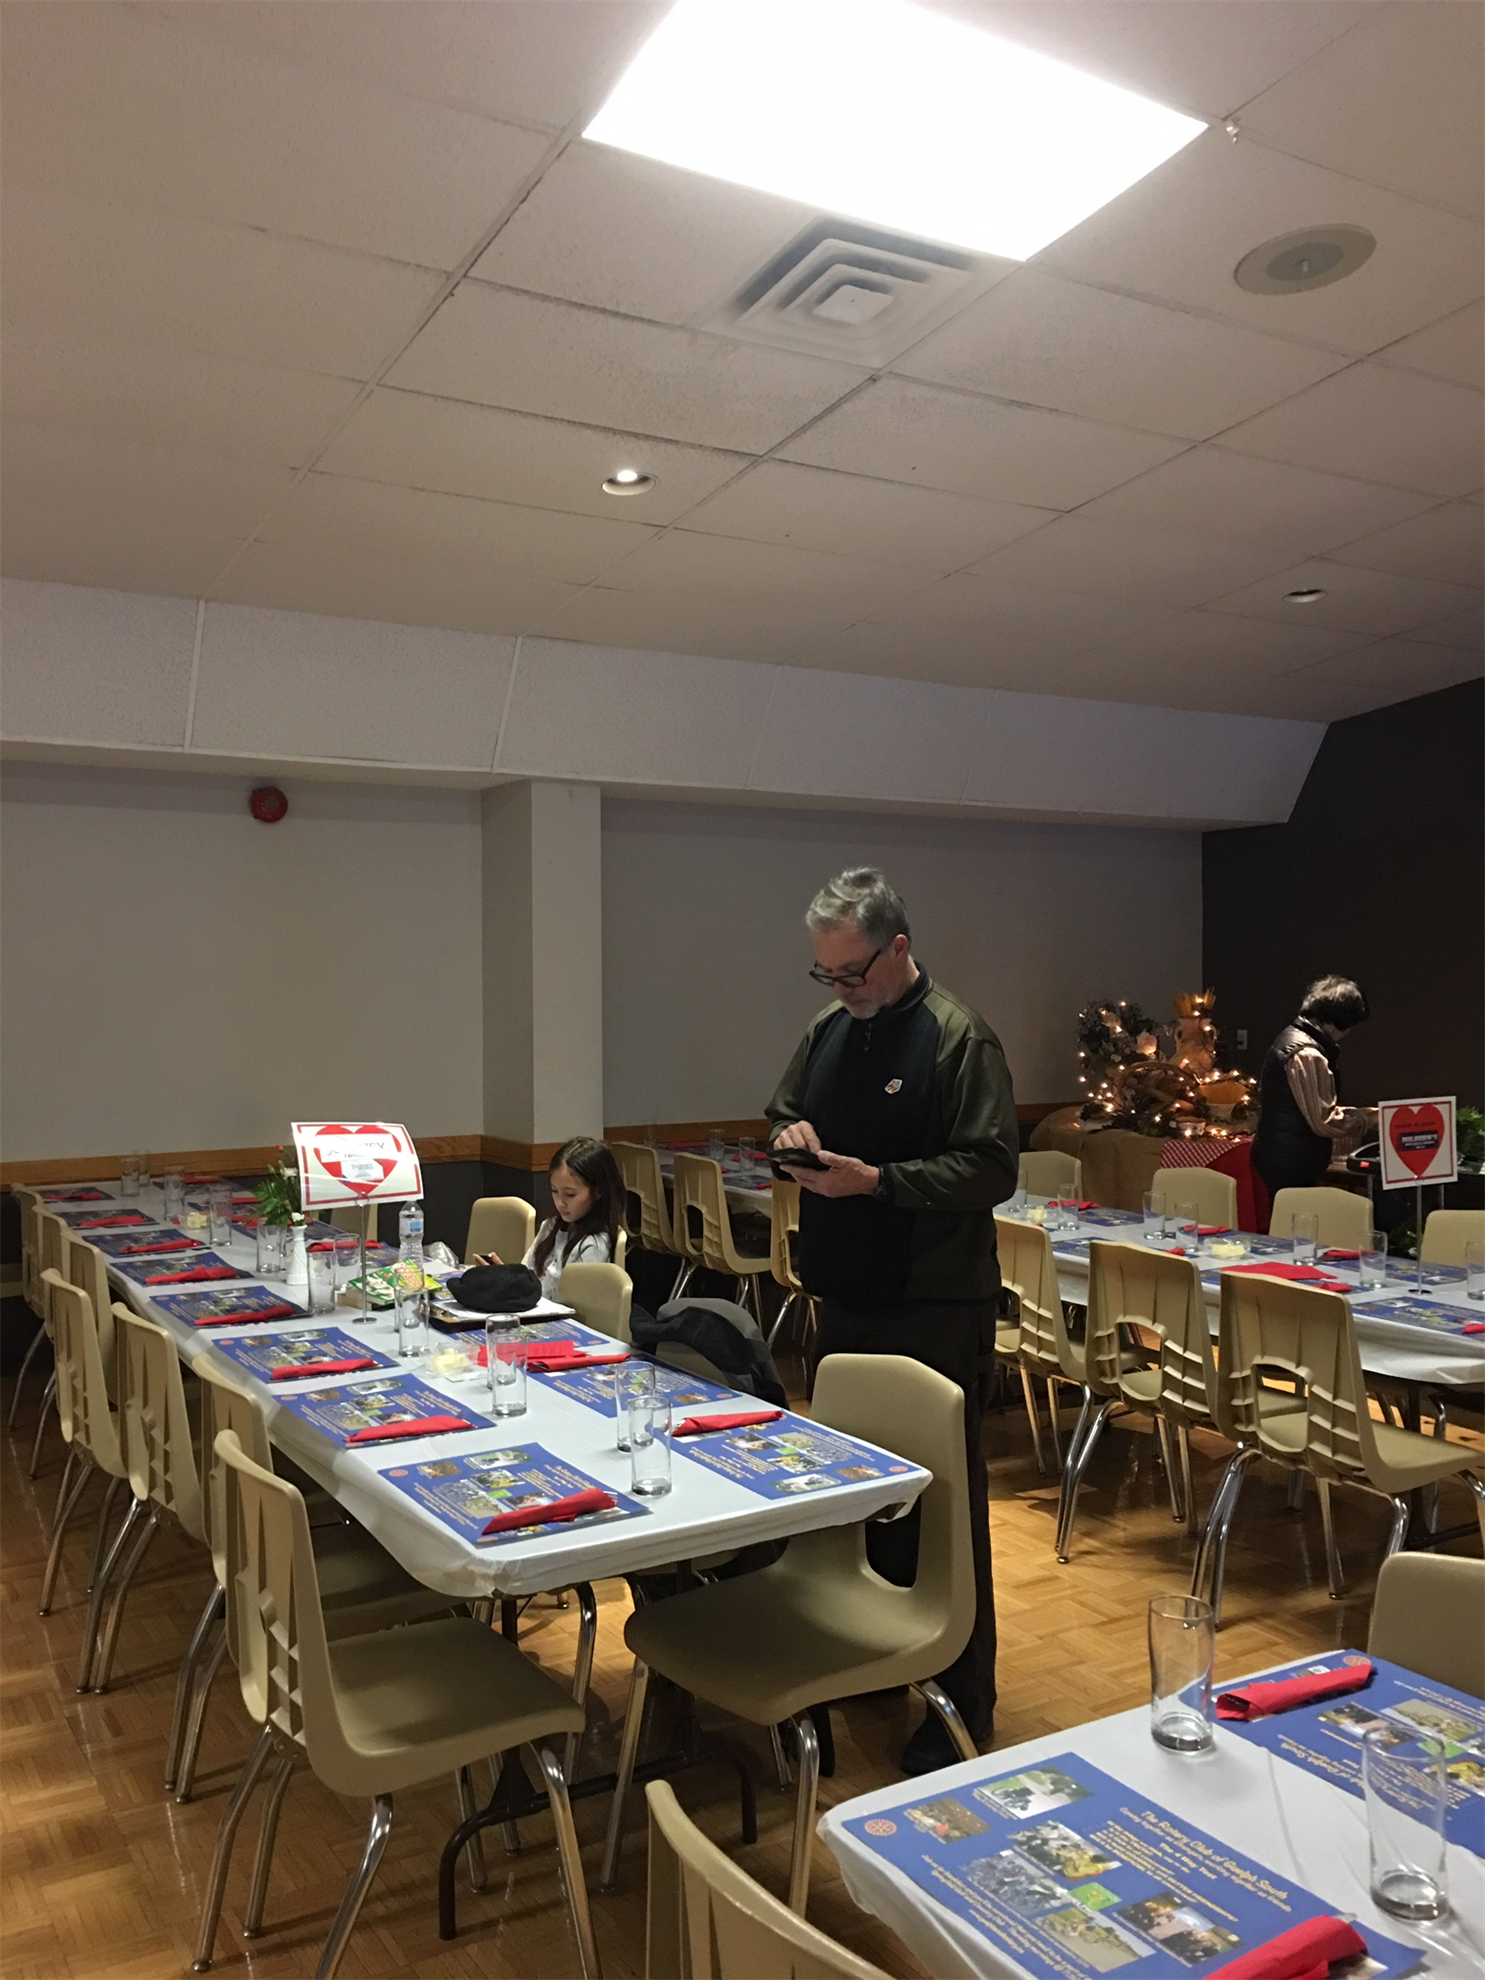 Geoff setting up the tables for our guests